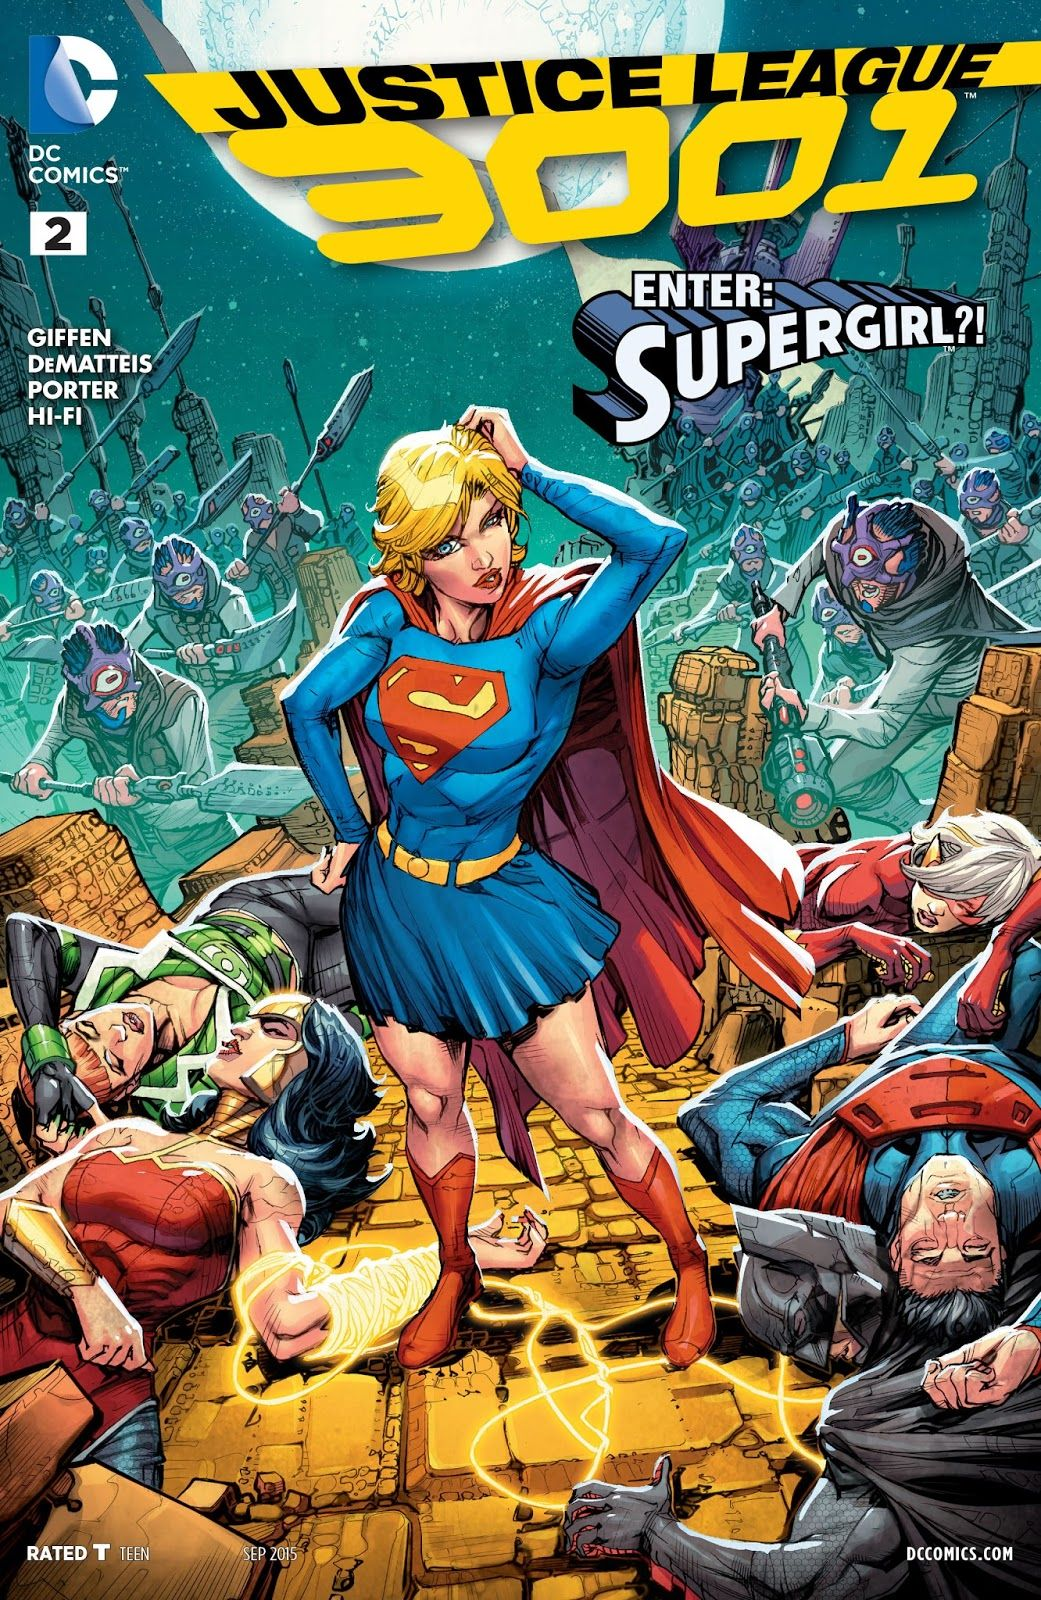 Wedge's Rambling Reviews : Are Reading Justice League 3001?